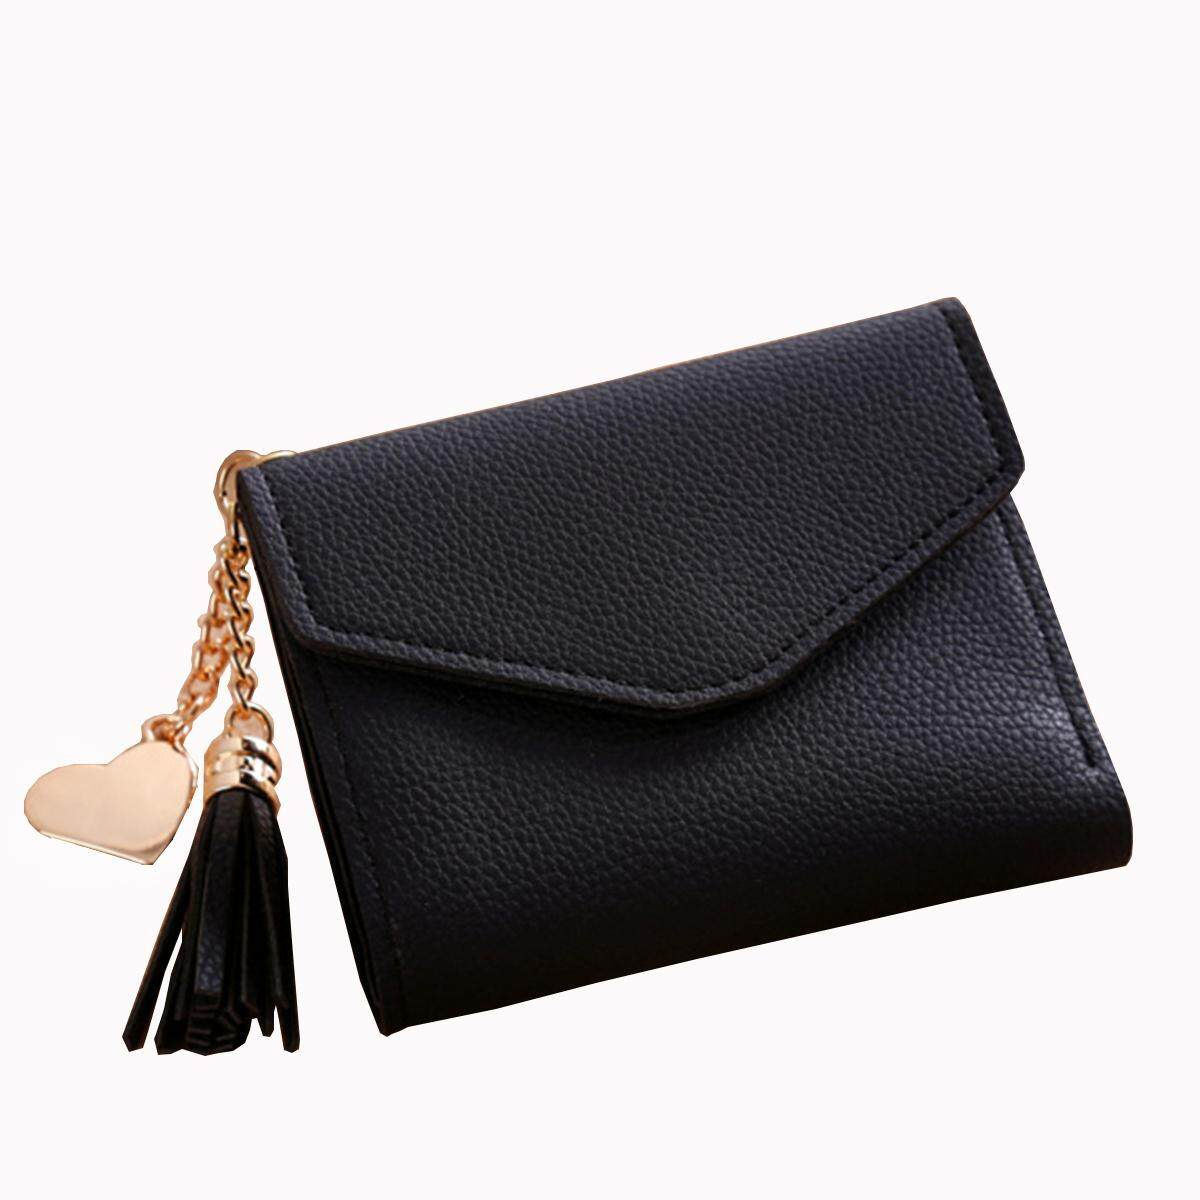 Women Mini Tassel Wallet Card Holder Clutch Coin Purse Leather Handbag Purse#black - intl